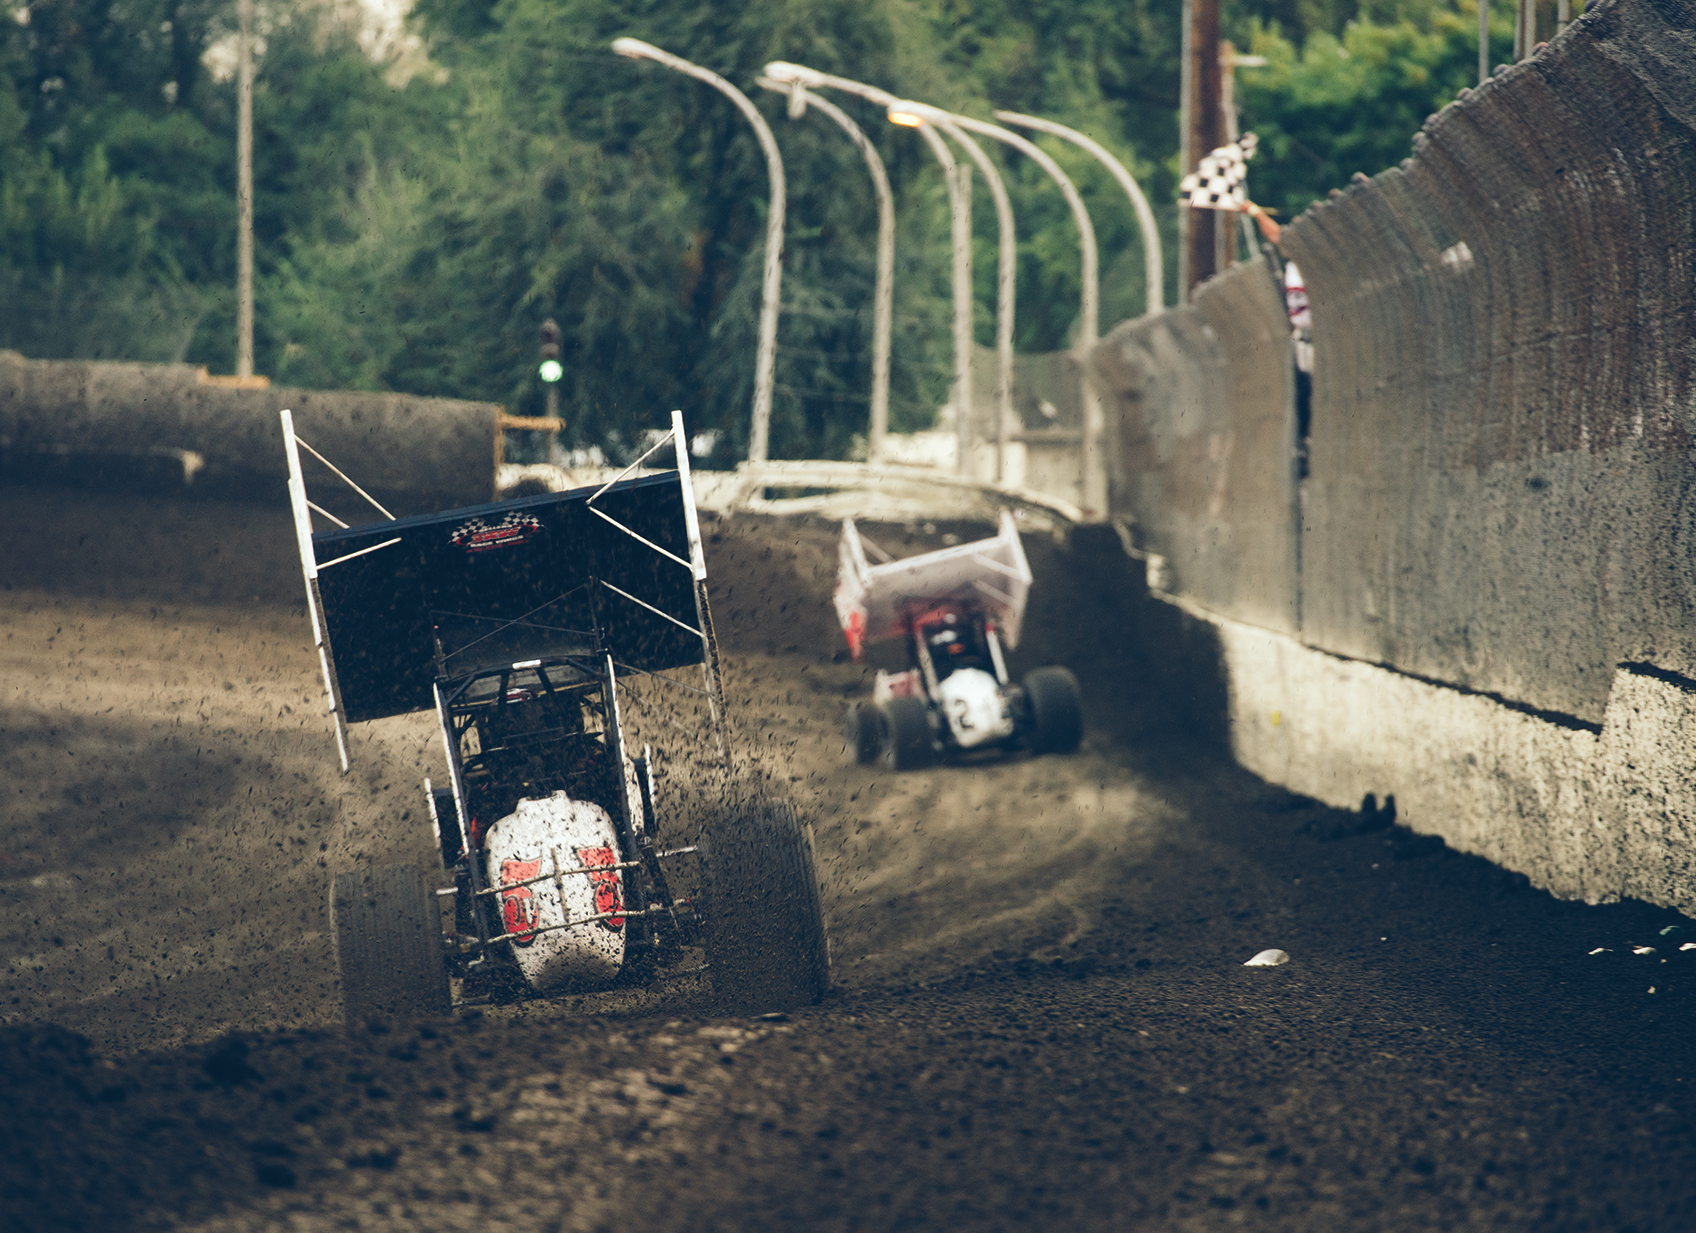 Winged 410 sprints on the front straight at Antioch.